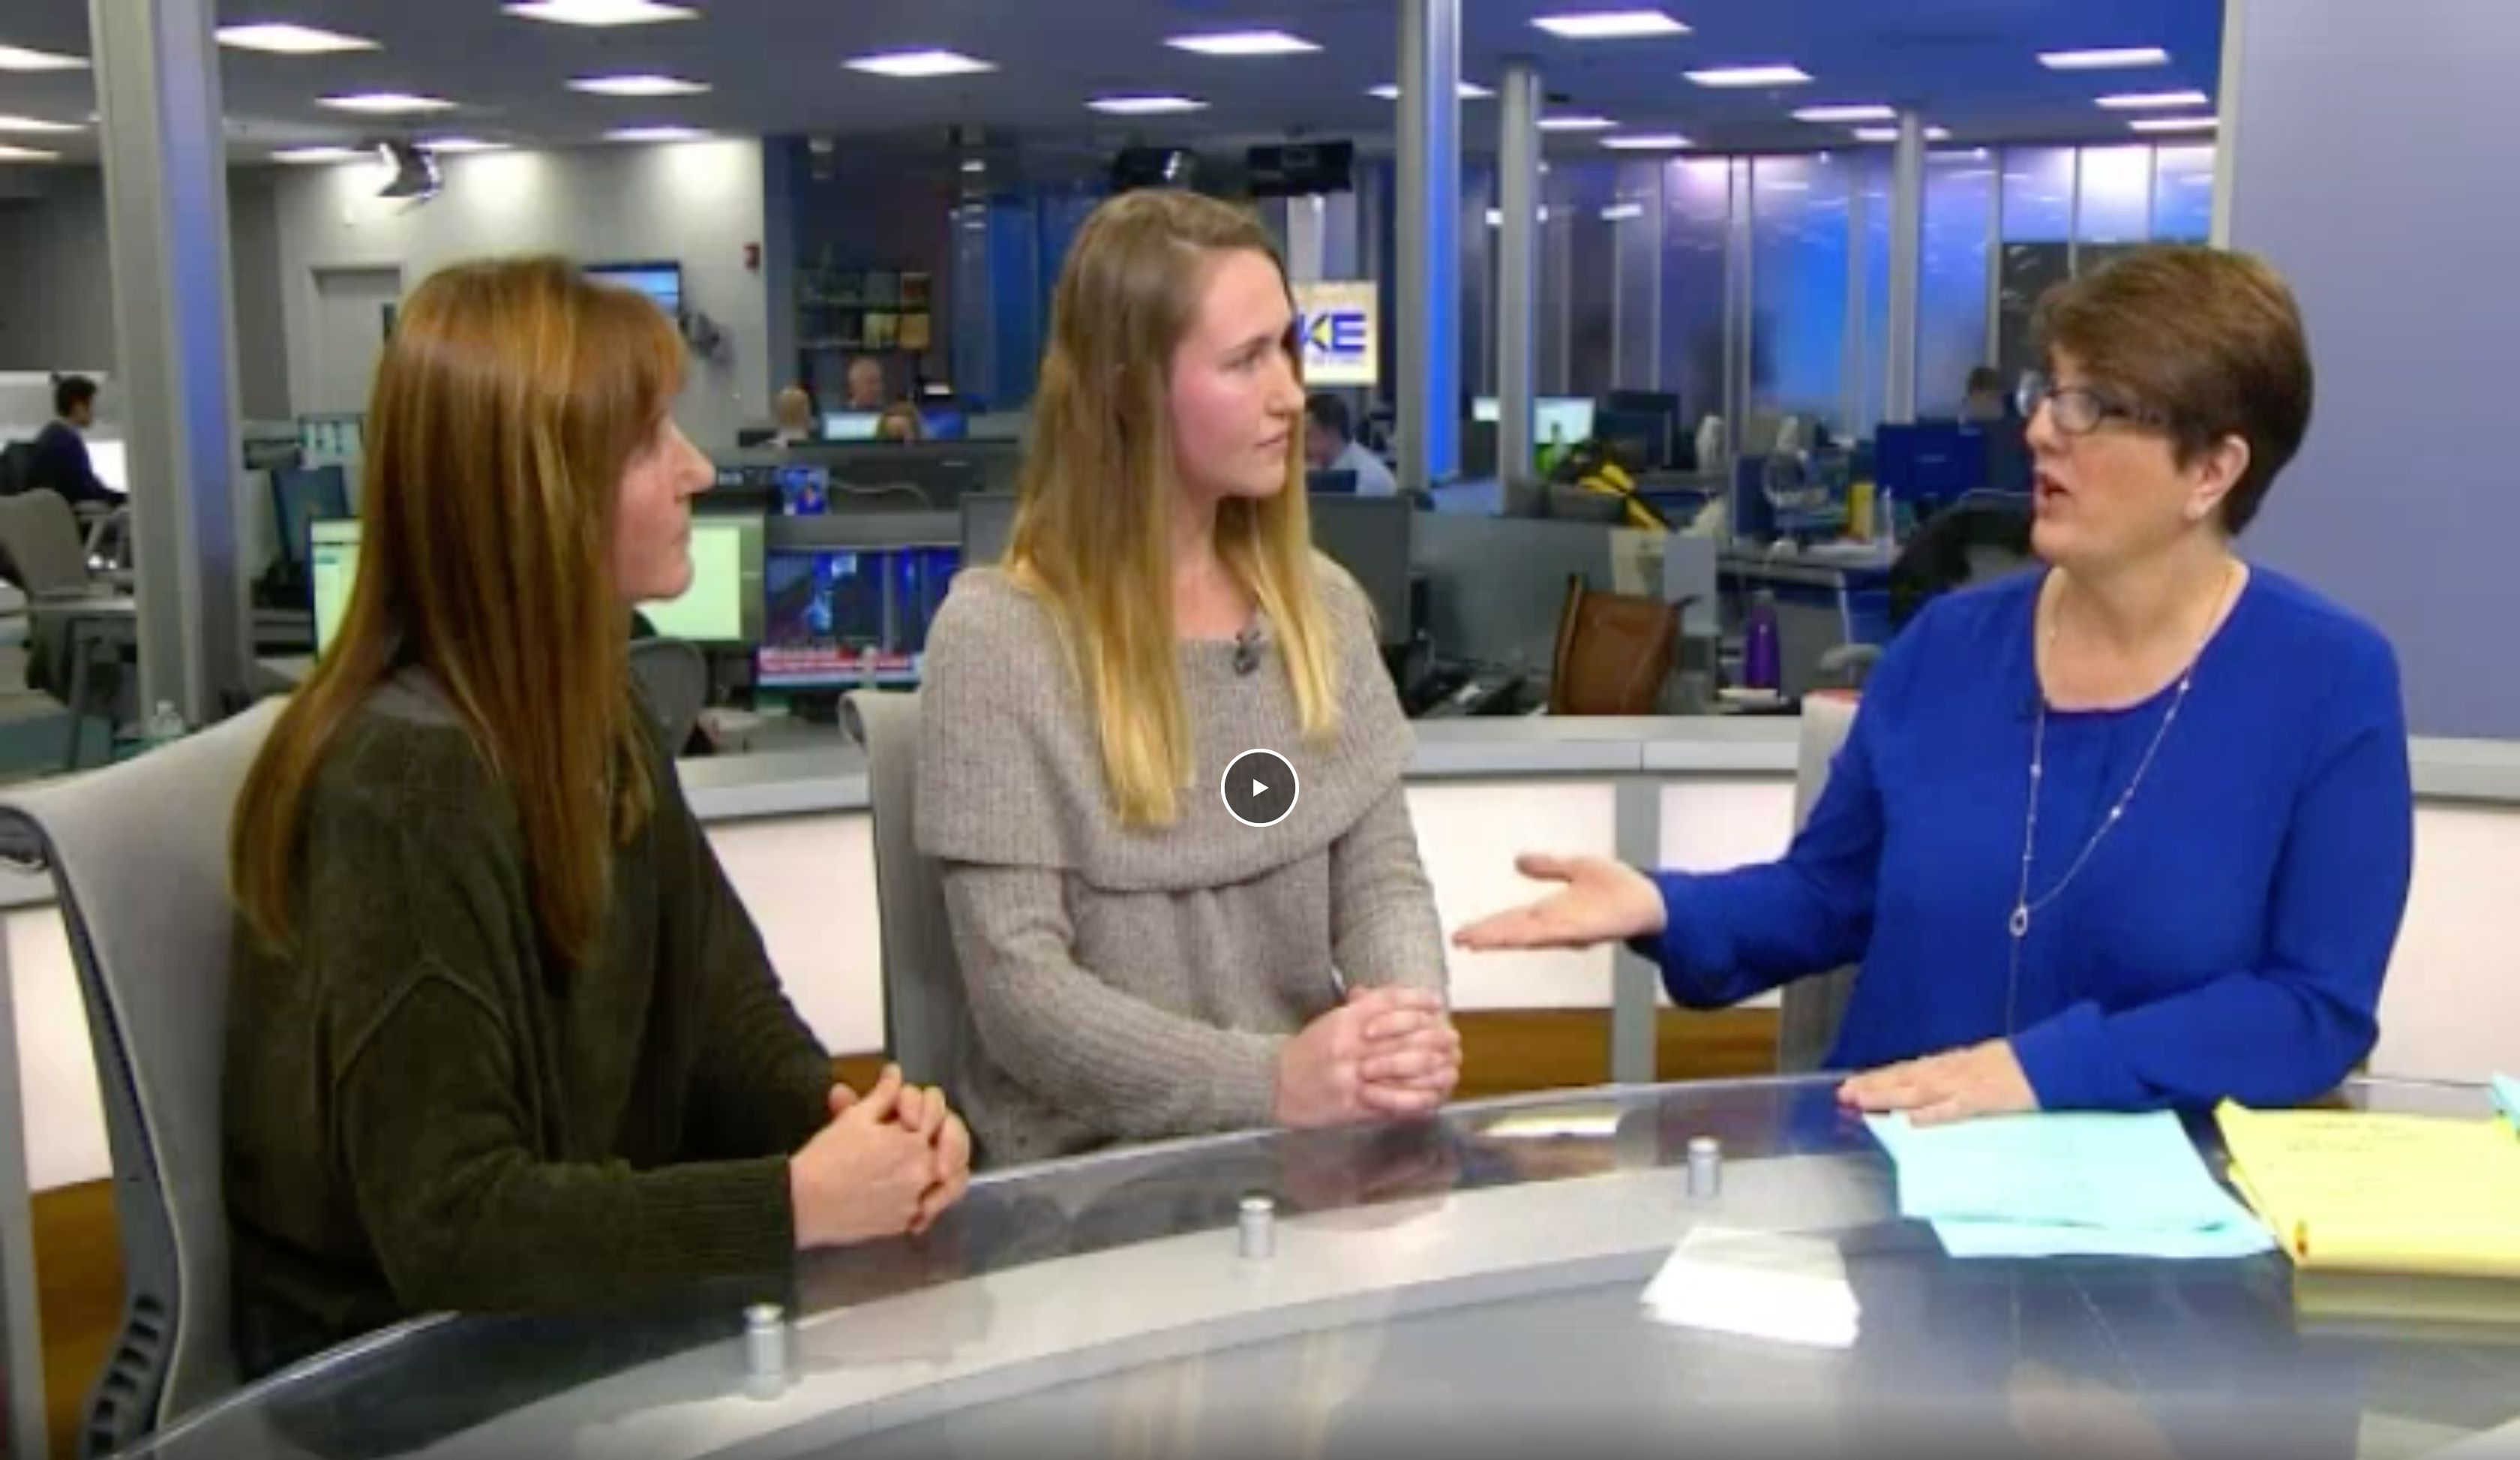 Screenshot of The Take interview with Hannah Corderman sitting in the center with Nancy Corderman to the left and Sue O'Connell to the right